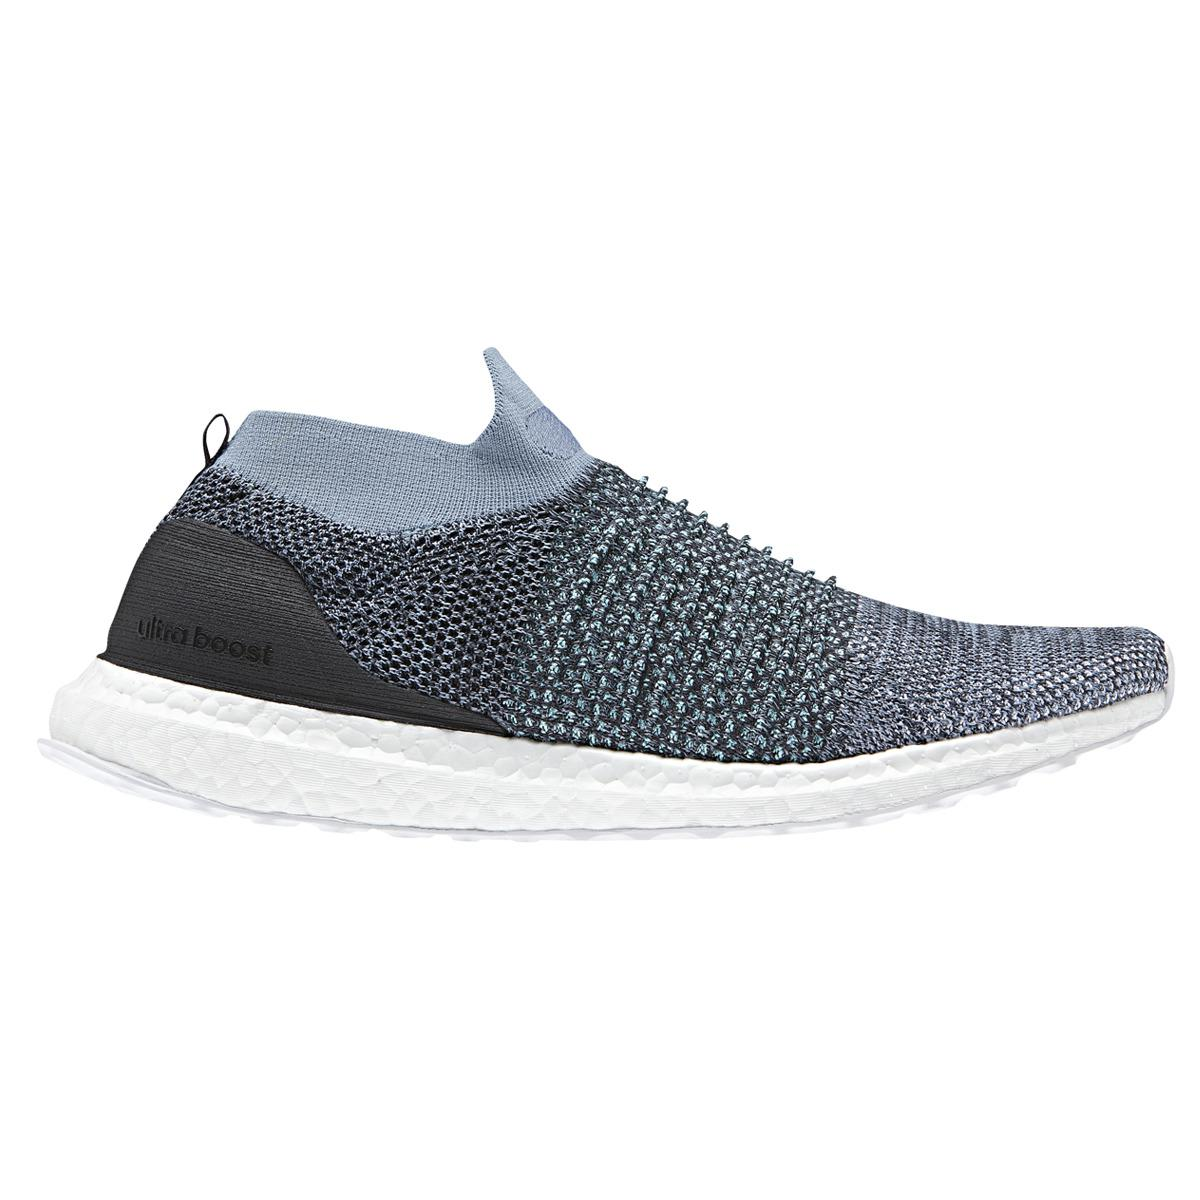 43af739bc07 Adidas Ultraboost Laceless Casual Trainers in Gray for Men - Lyst